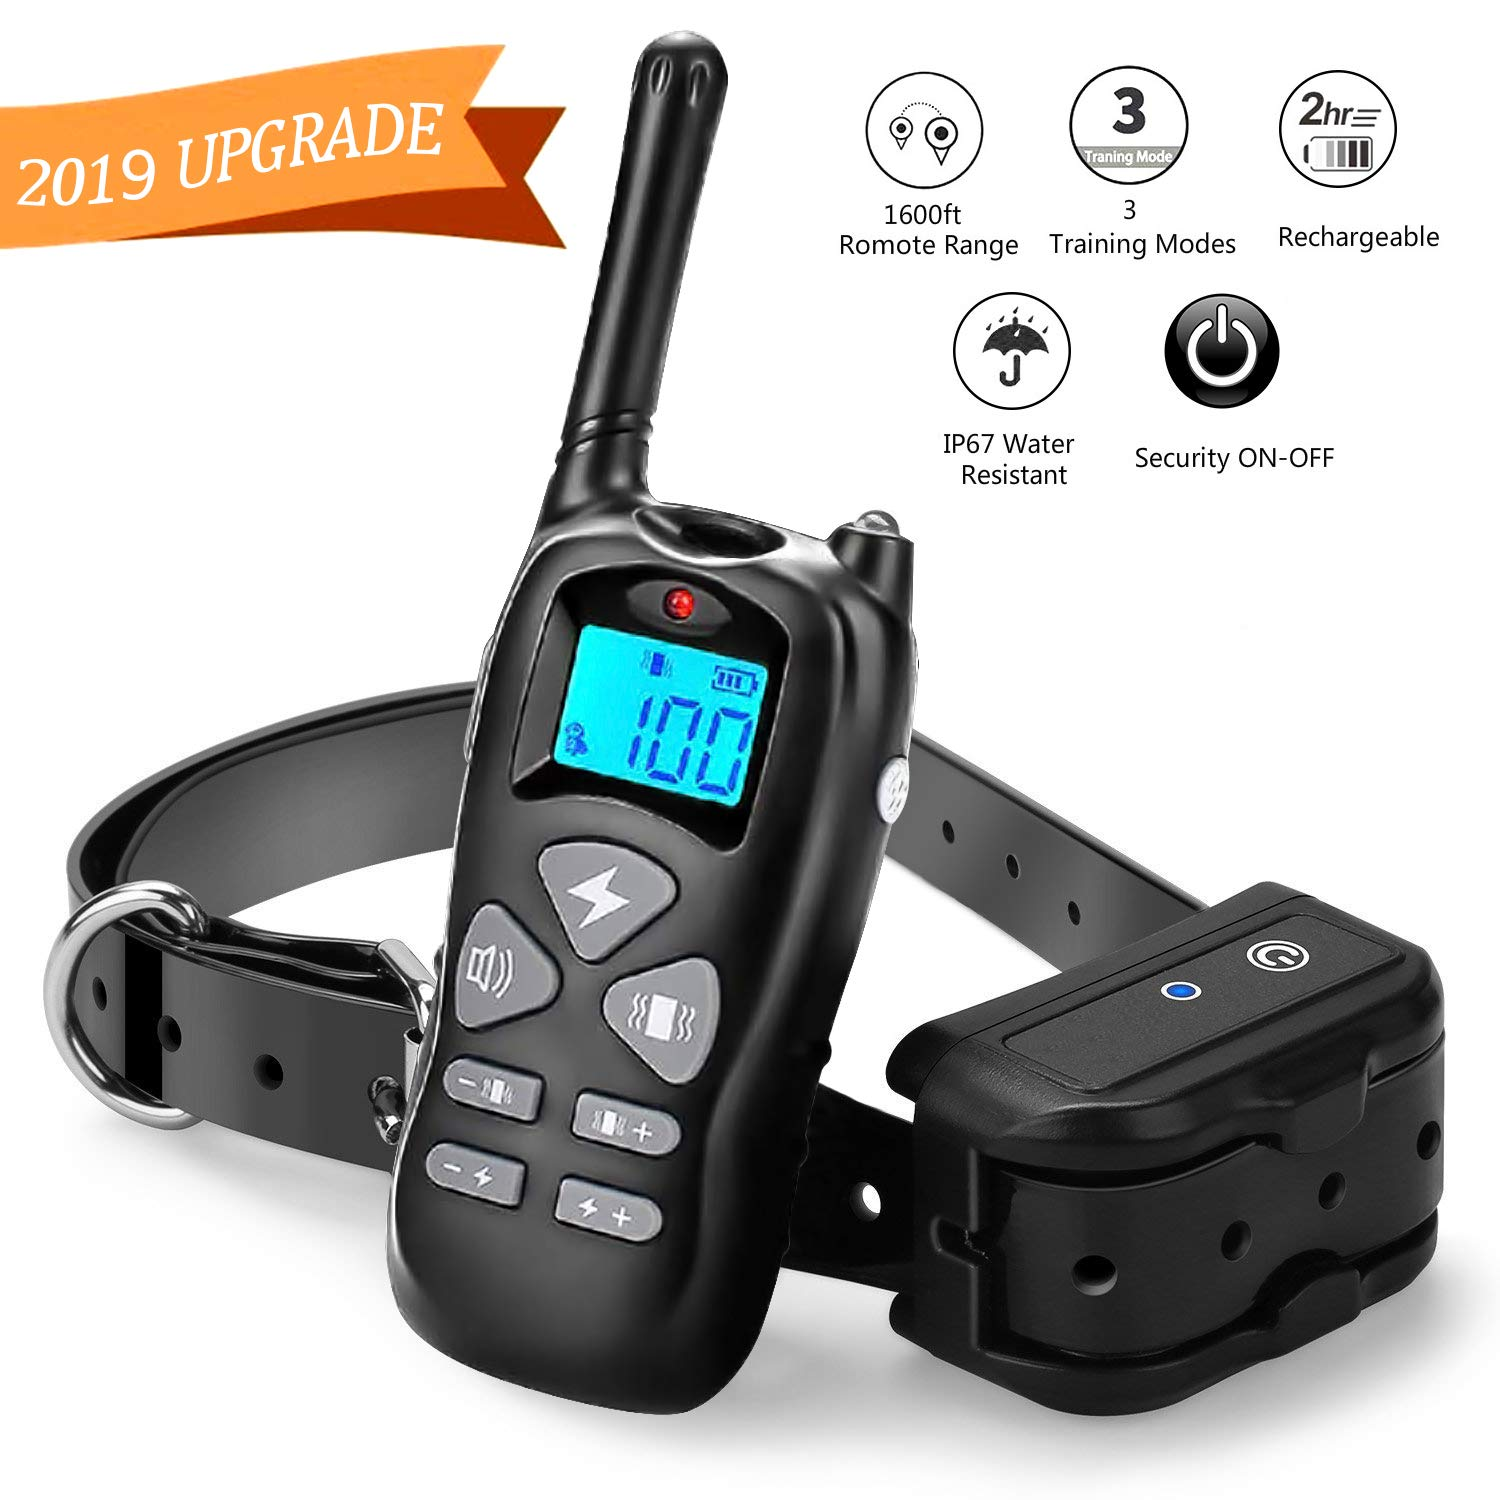 Shock Collar for Dogs, Dog Shock Collar with Remote 1600ft Range, IP67 Waterproof Rechargeable Dog Training Collar Beep Vibrate and Shock collar for Large Dogs and Small Dogs